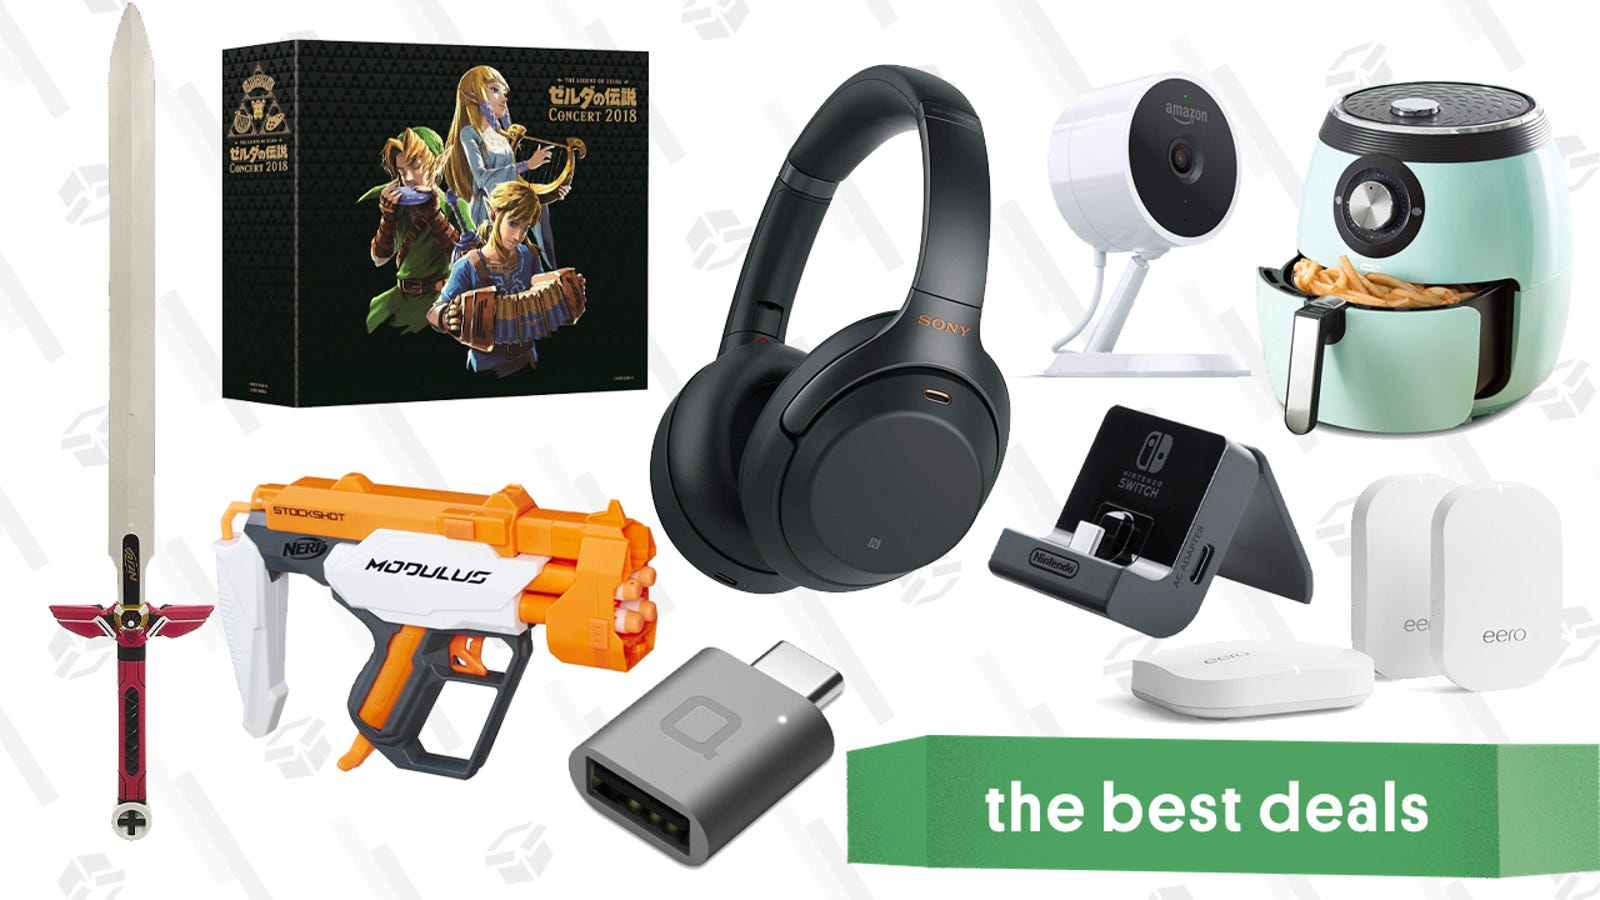 Monday's Best Deals: Nerf Gold Box, Dash Air Fryers, eero Routers, and More